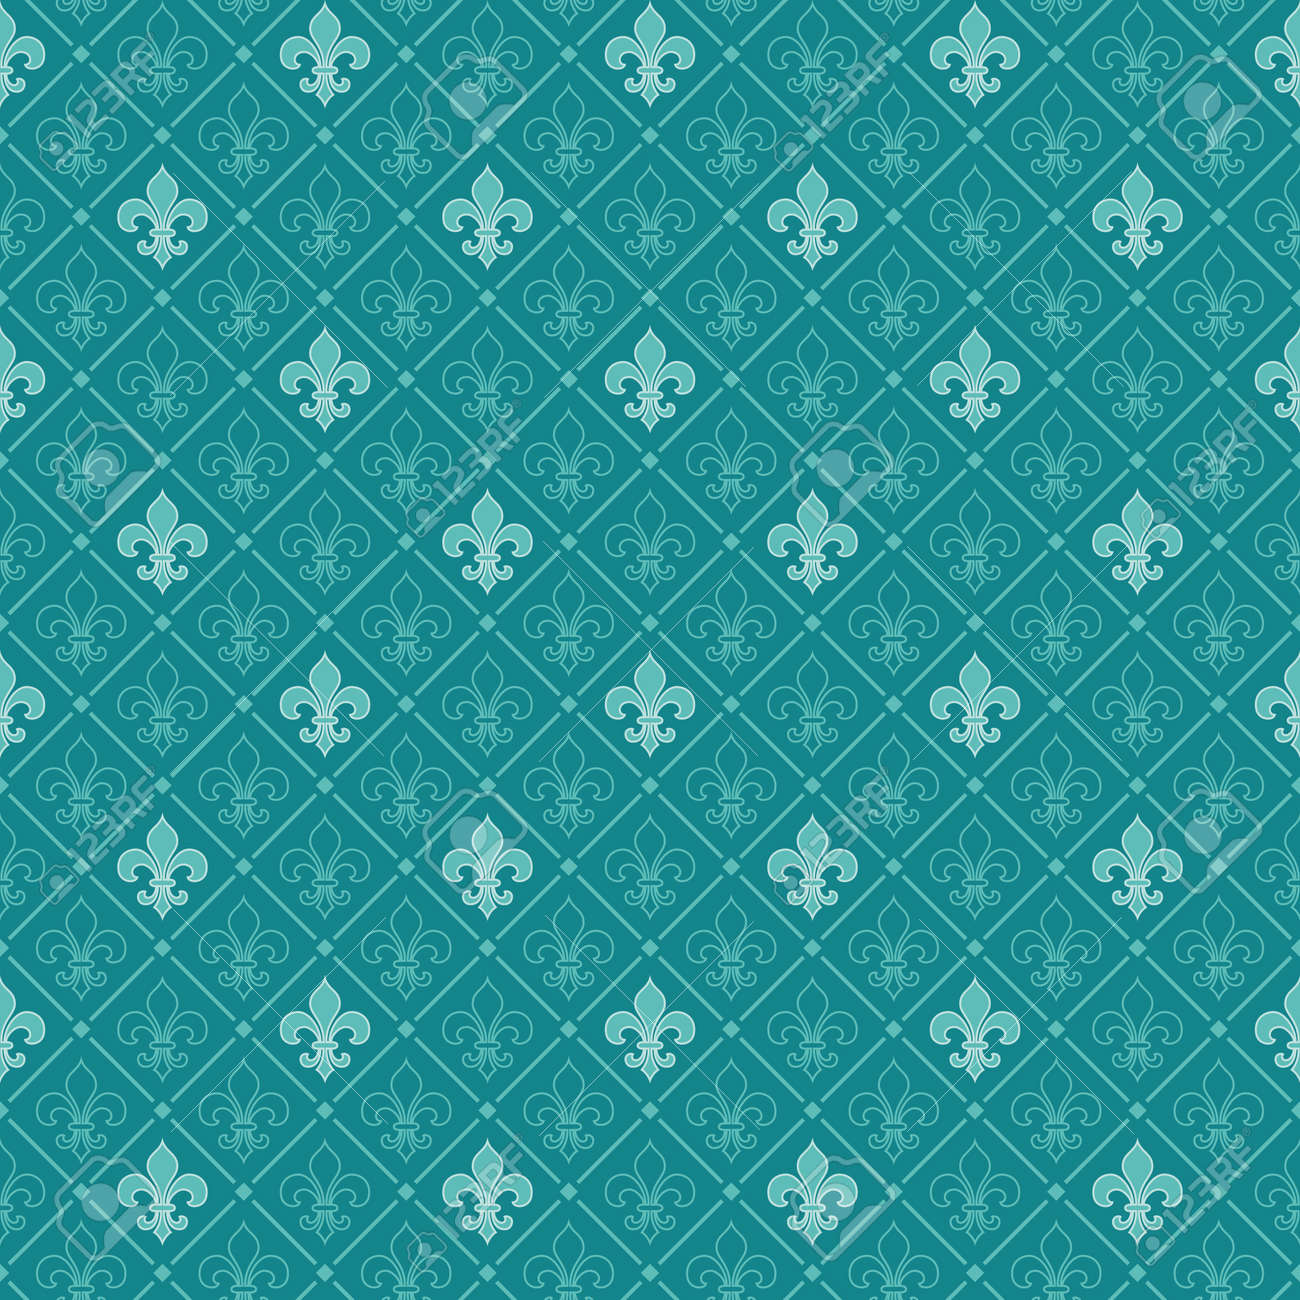 Turquoise Vector Background Royalty Free Cliparts Vectors And